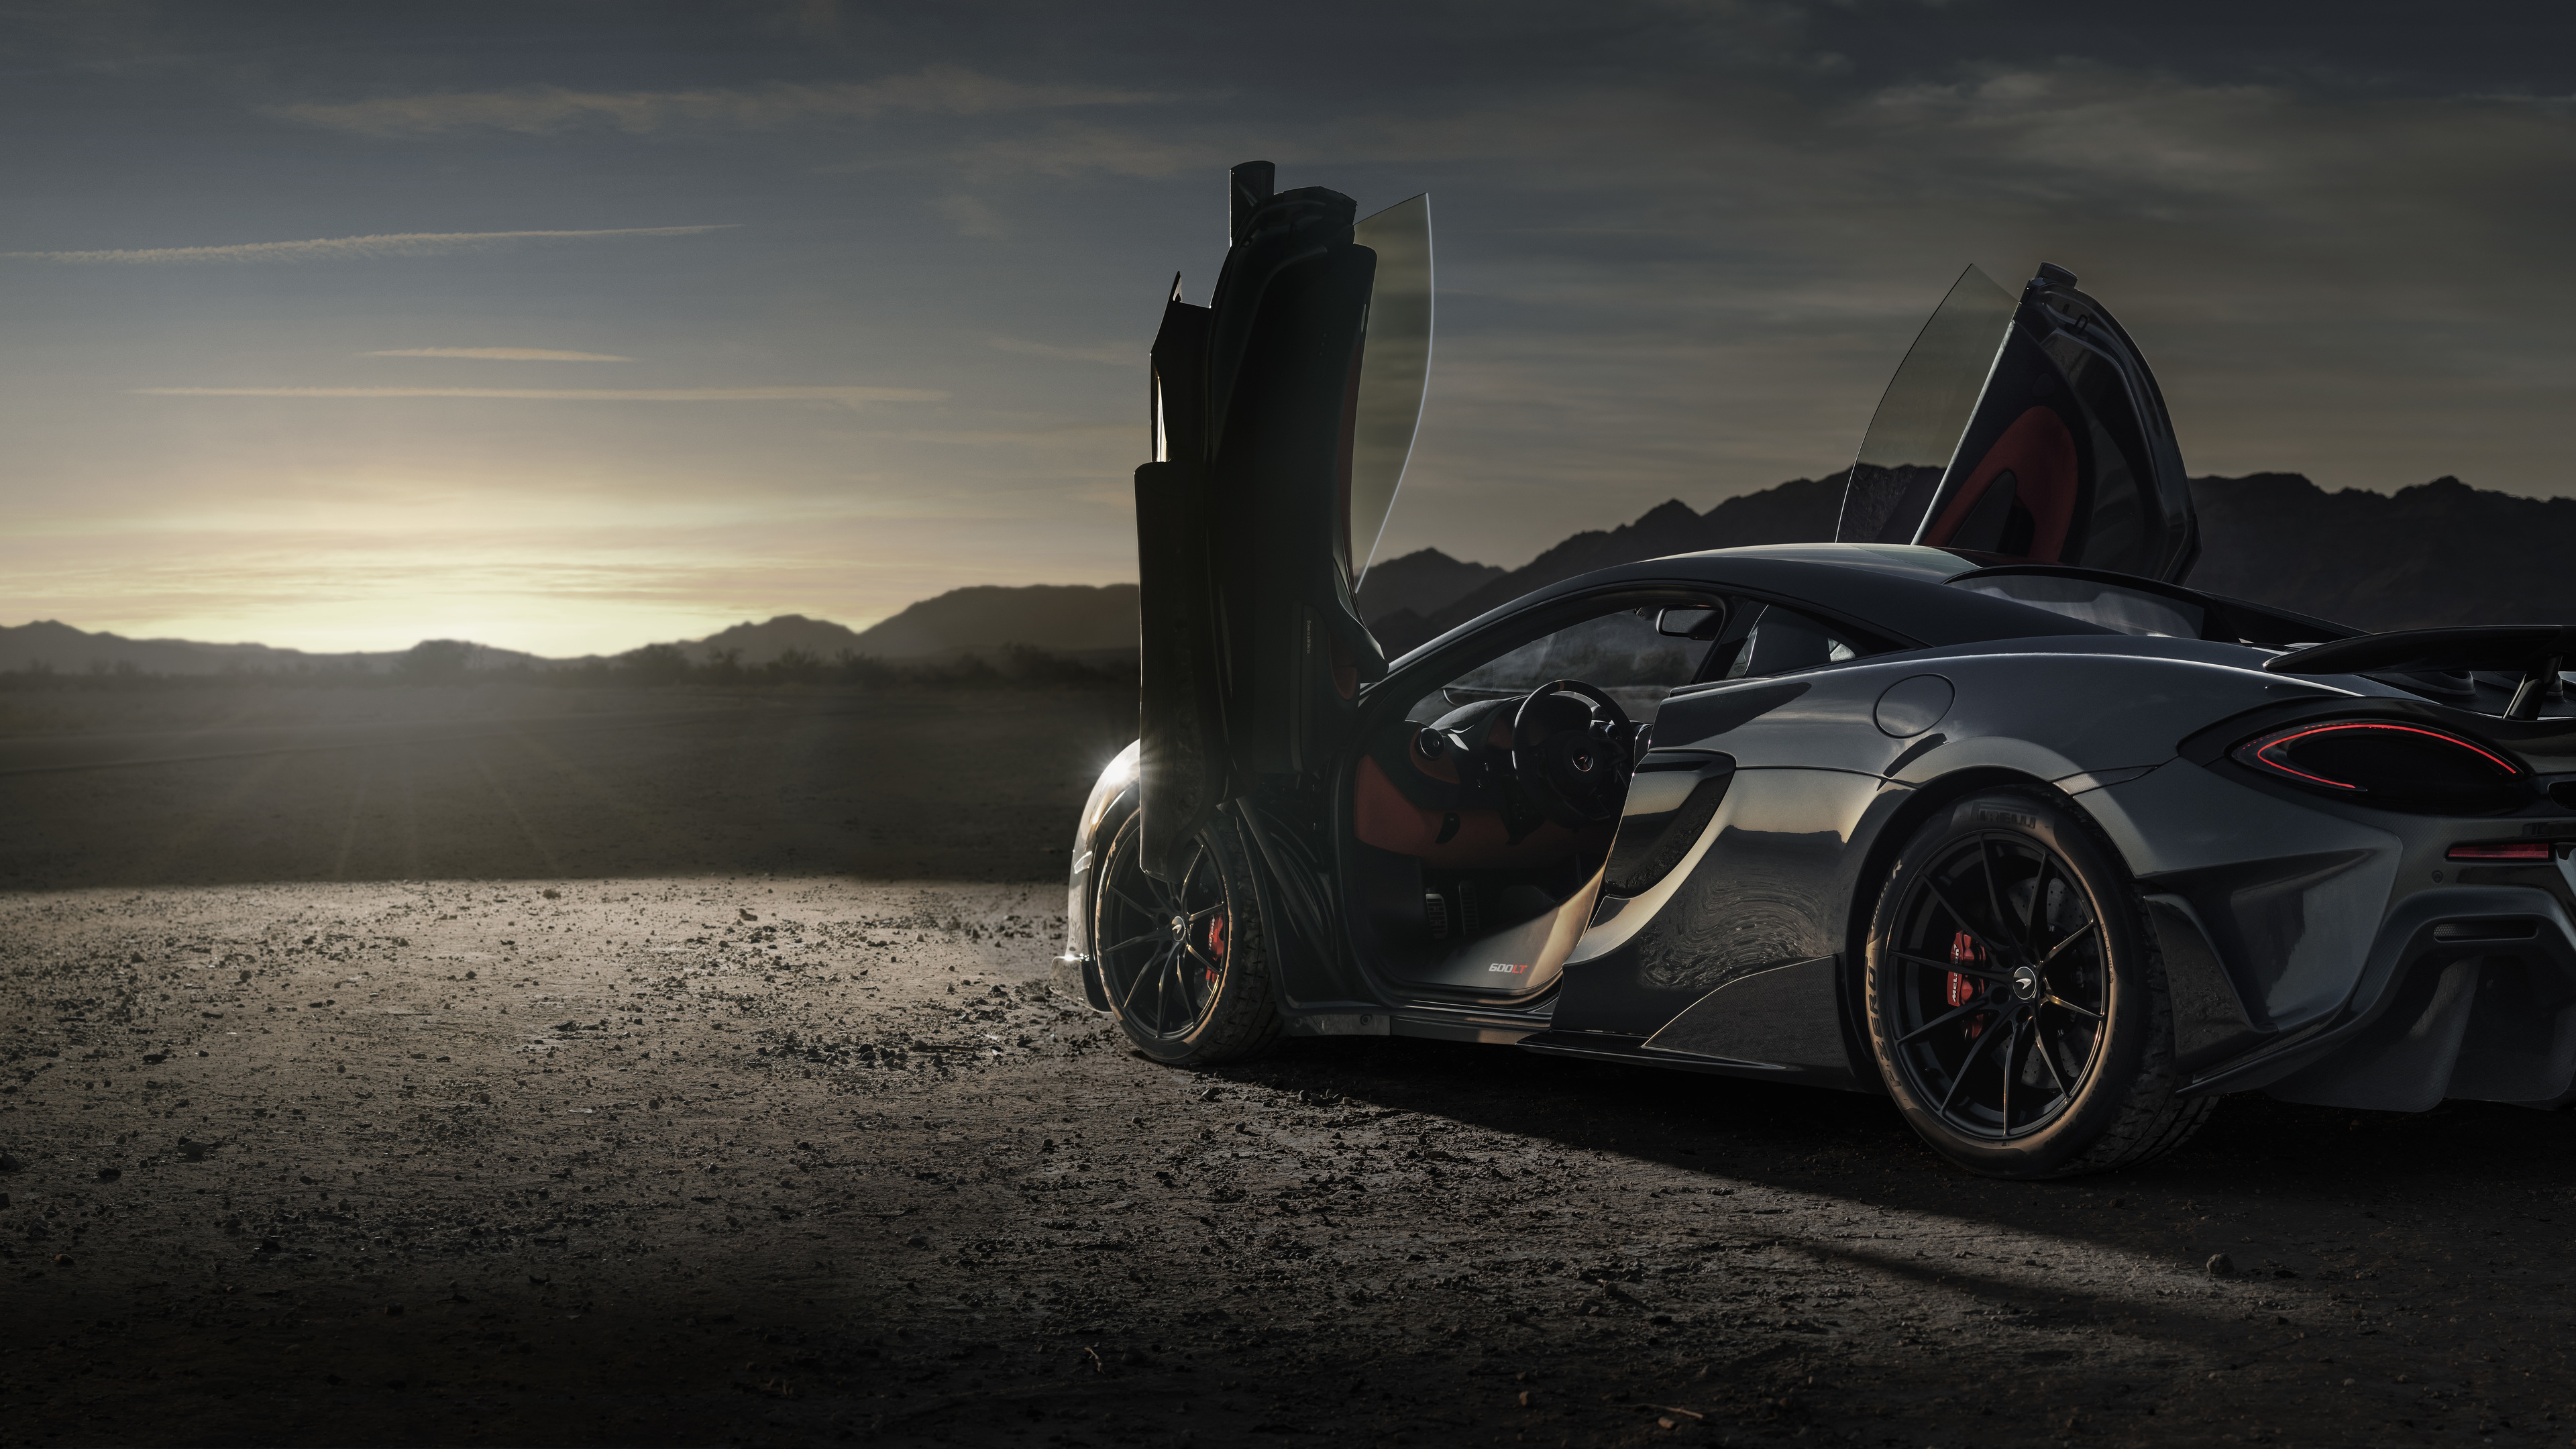 The company produces high performance cars based on formula one technology. Mclaren Wallpapers Hd Wallpapers Cars Wallpapers Mclaren 600lt 3840x2160 Download Hd Wallpaper Wallpapertip